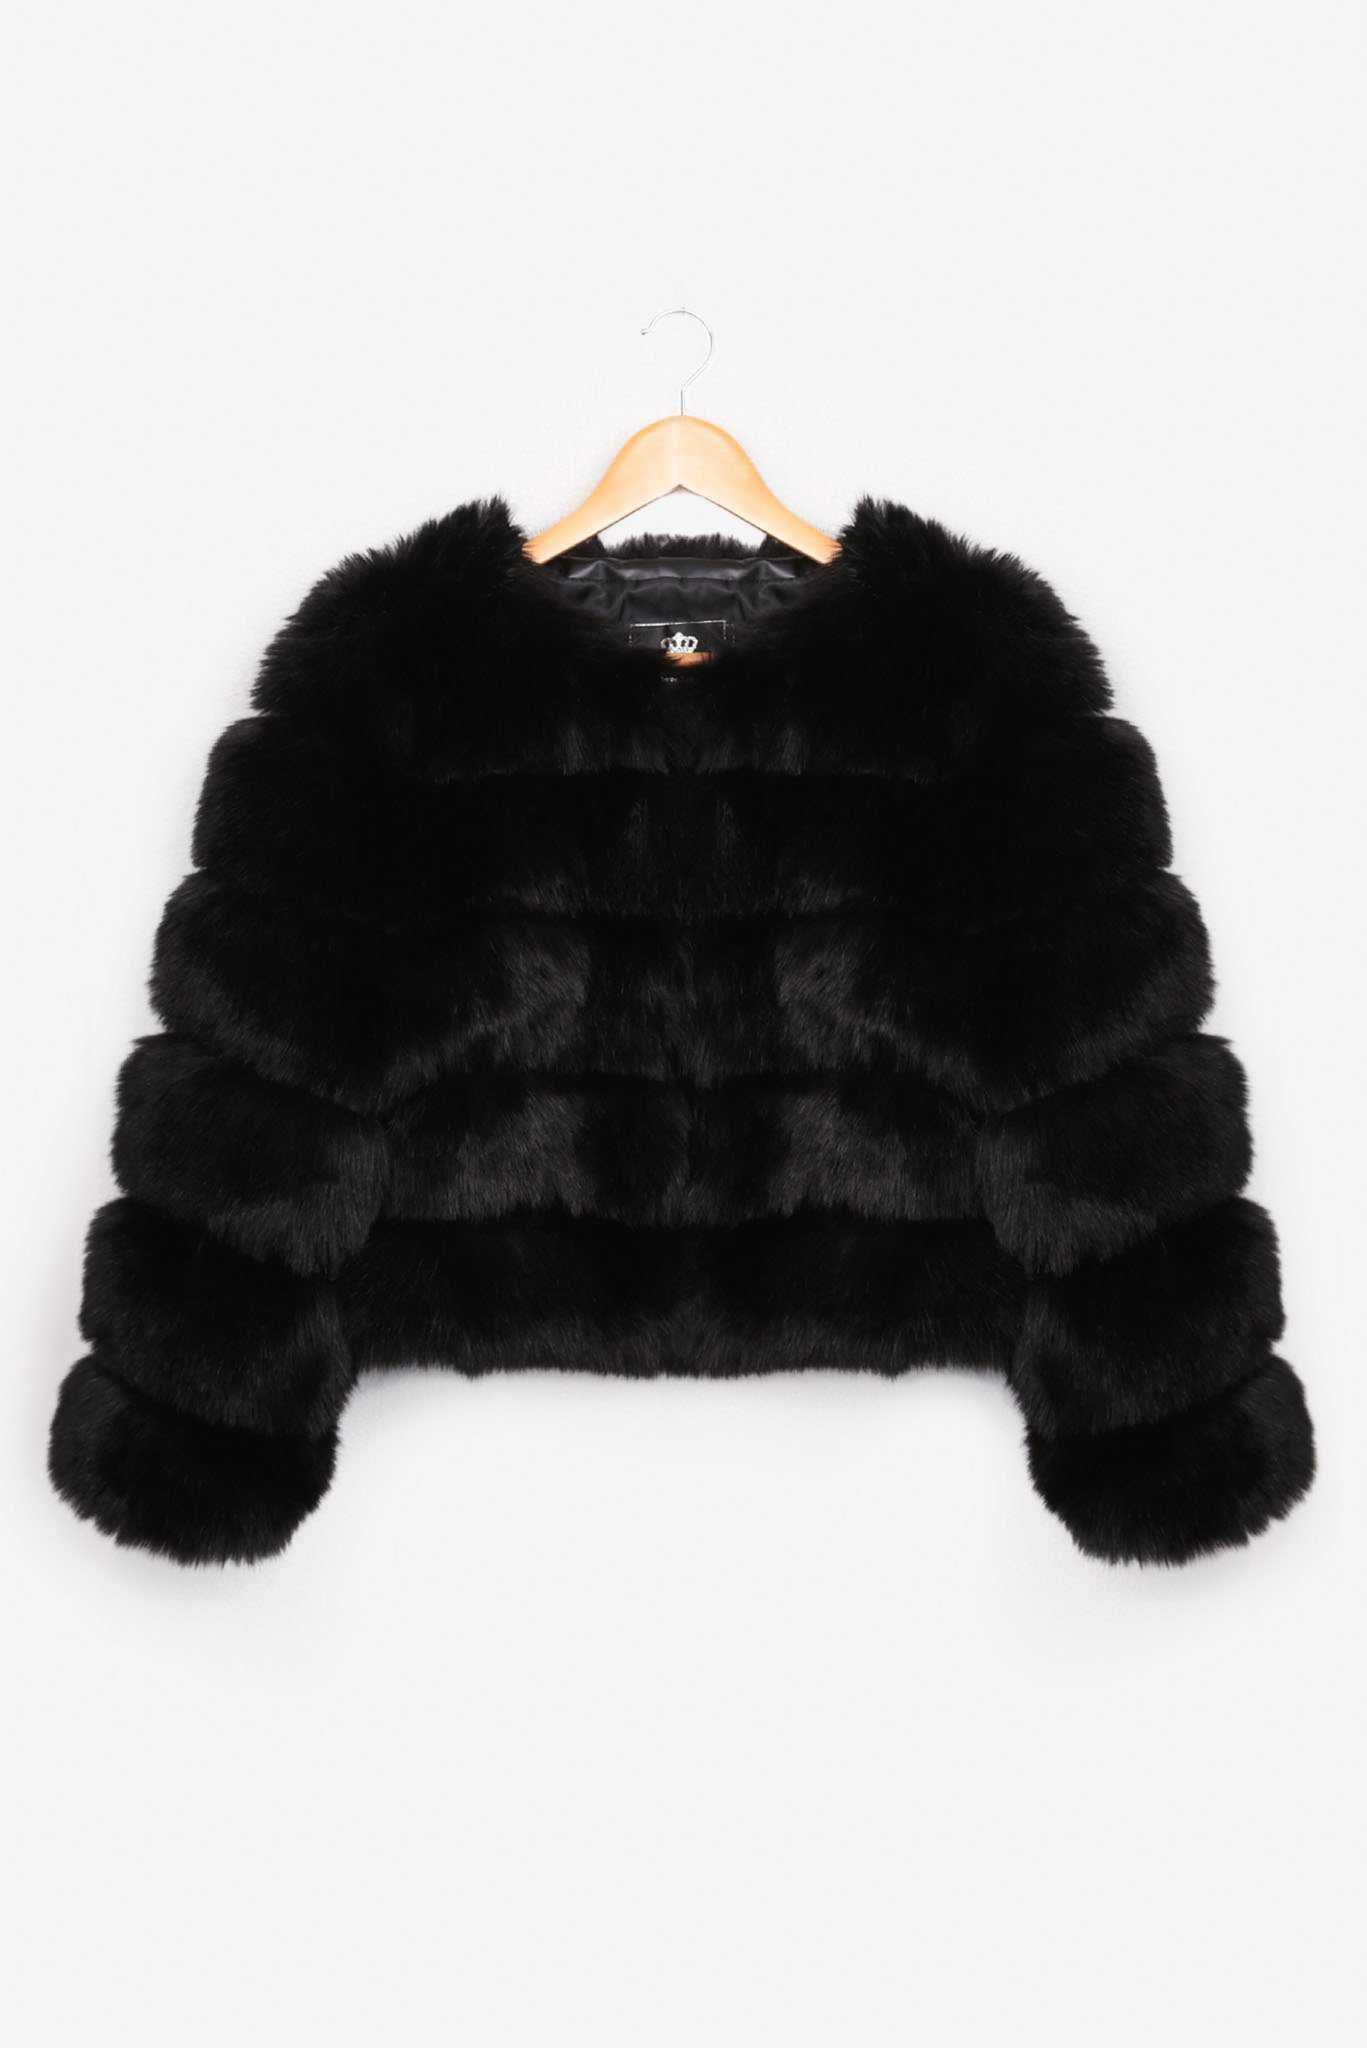 Faux Fur Jacket - Black | Raw Orange